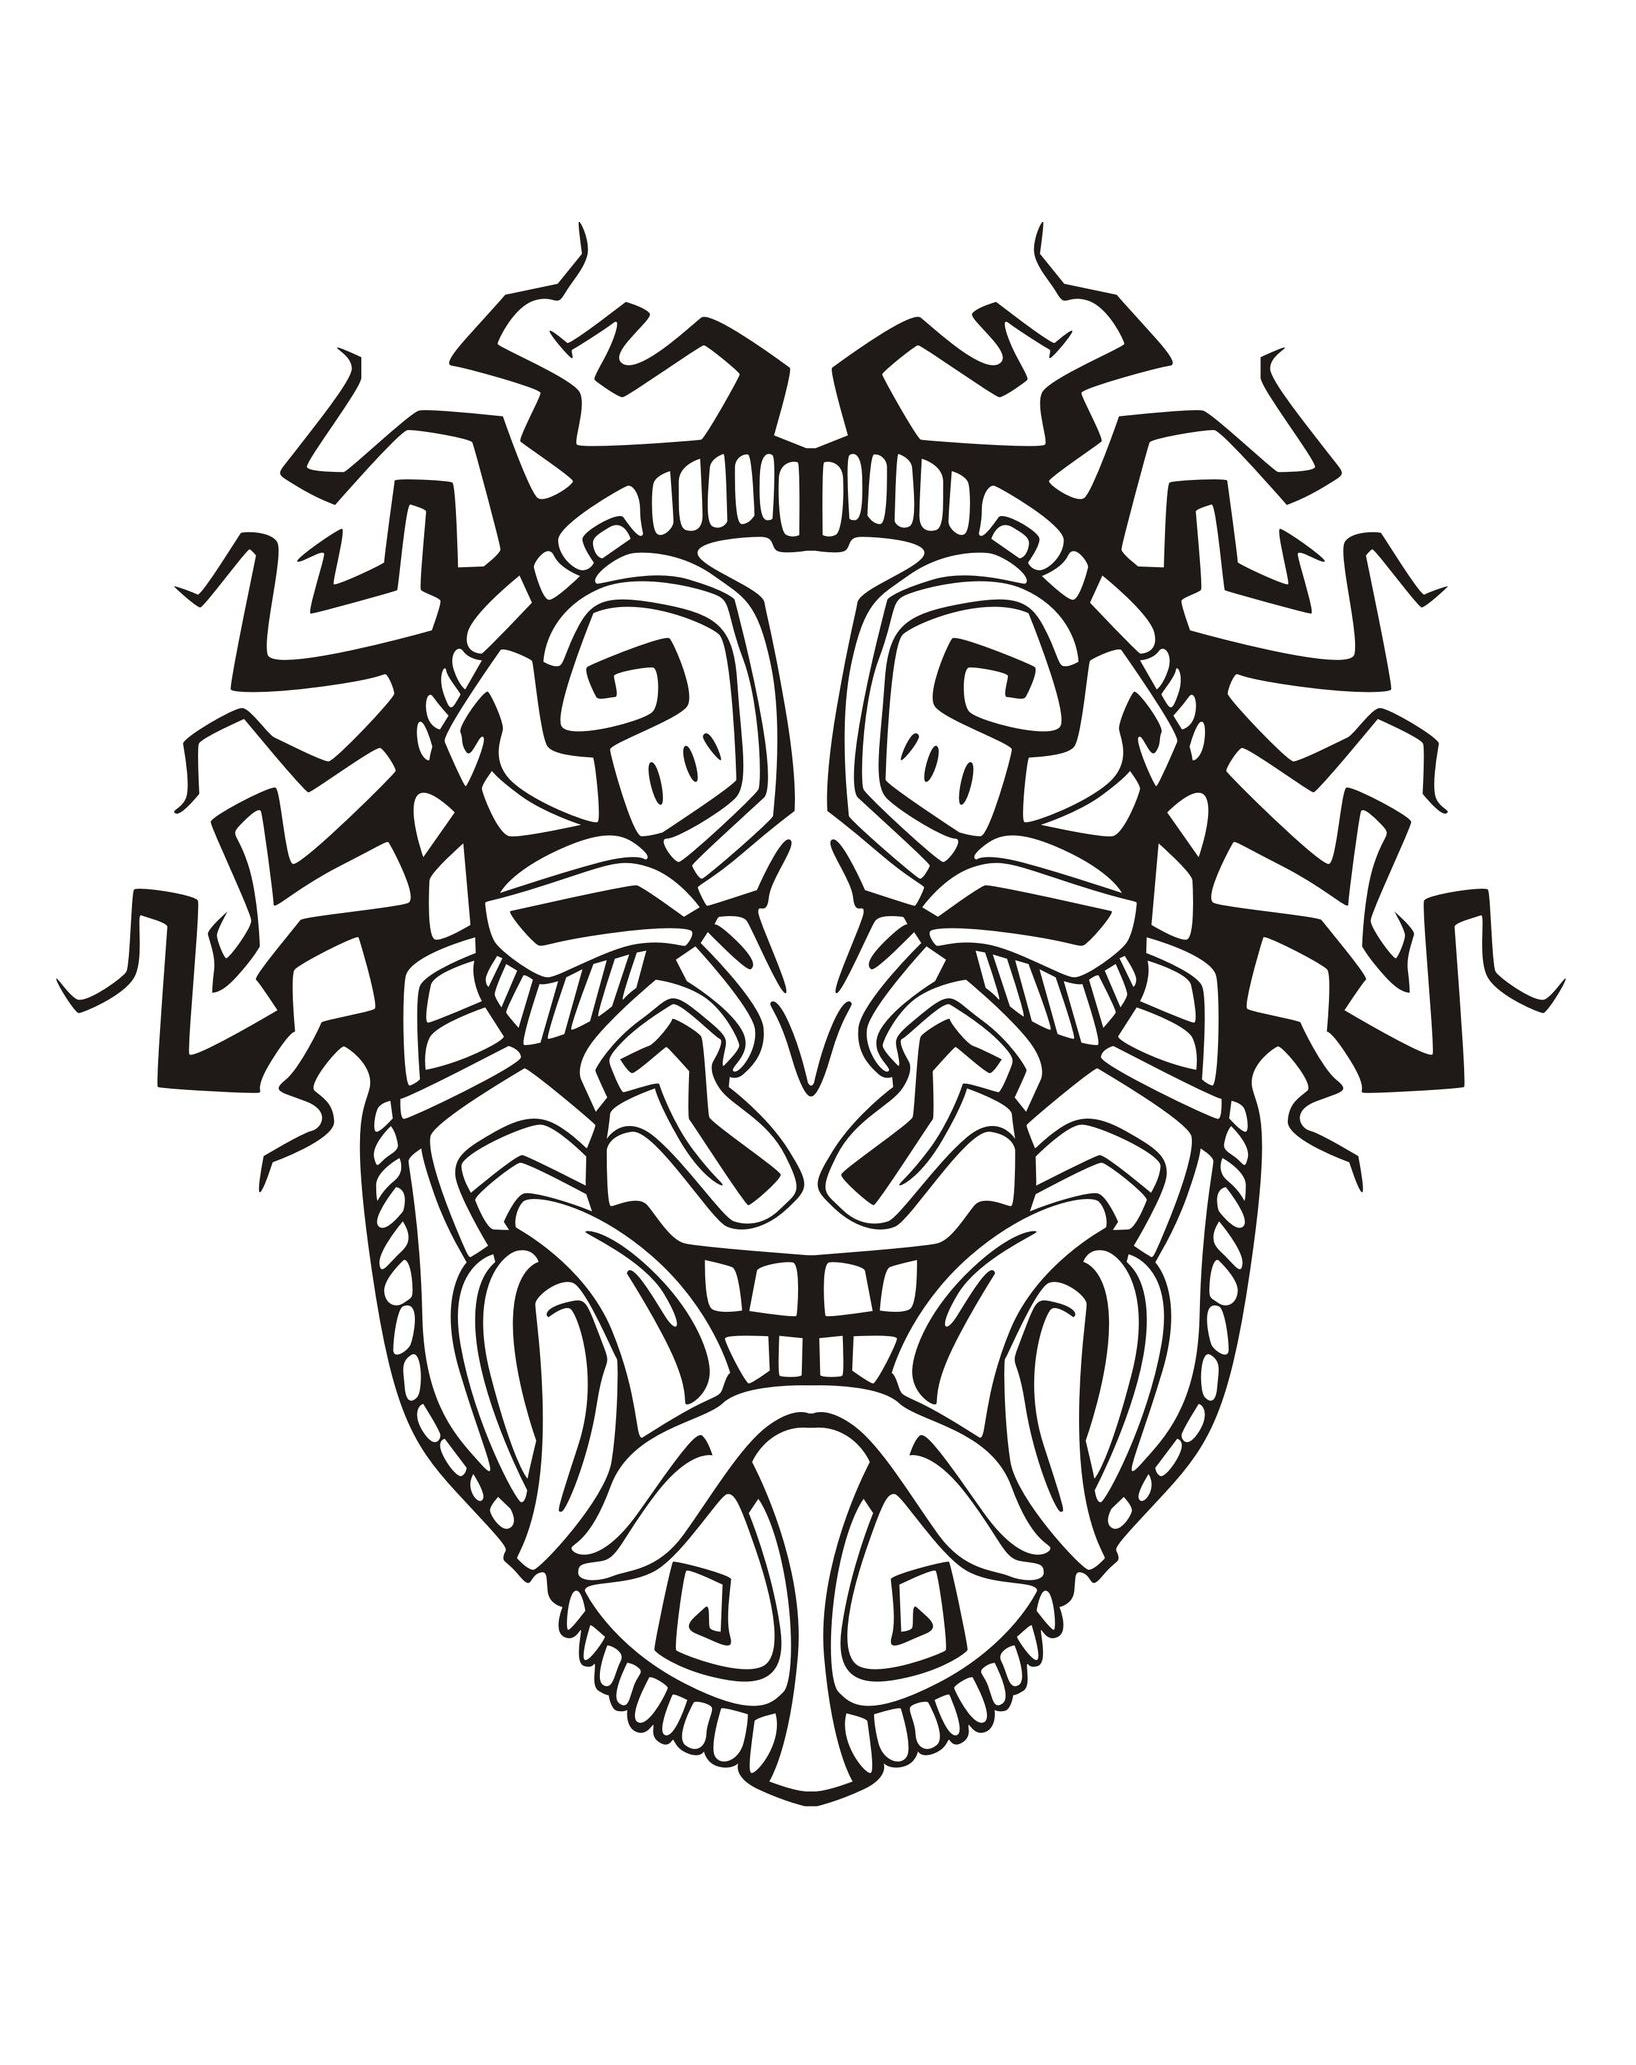 Aztec skull drawing at free for personal for Aztec mask template